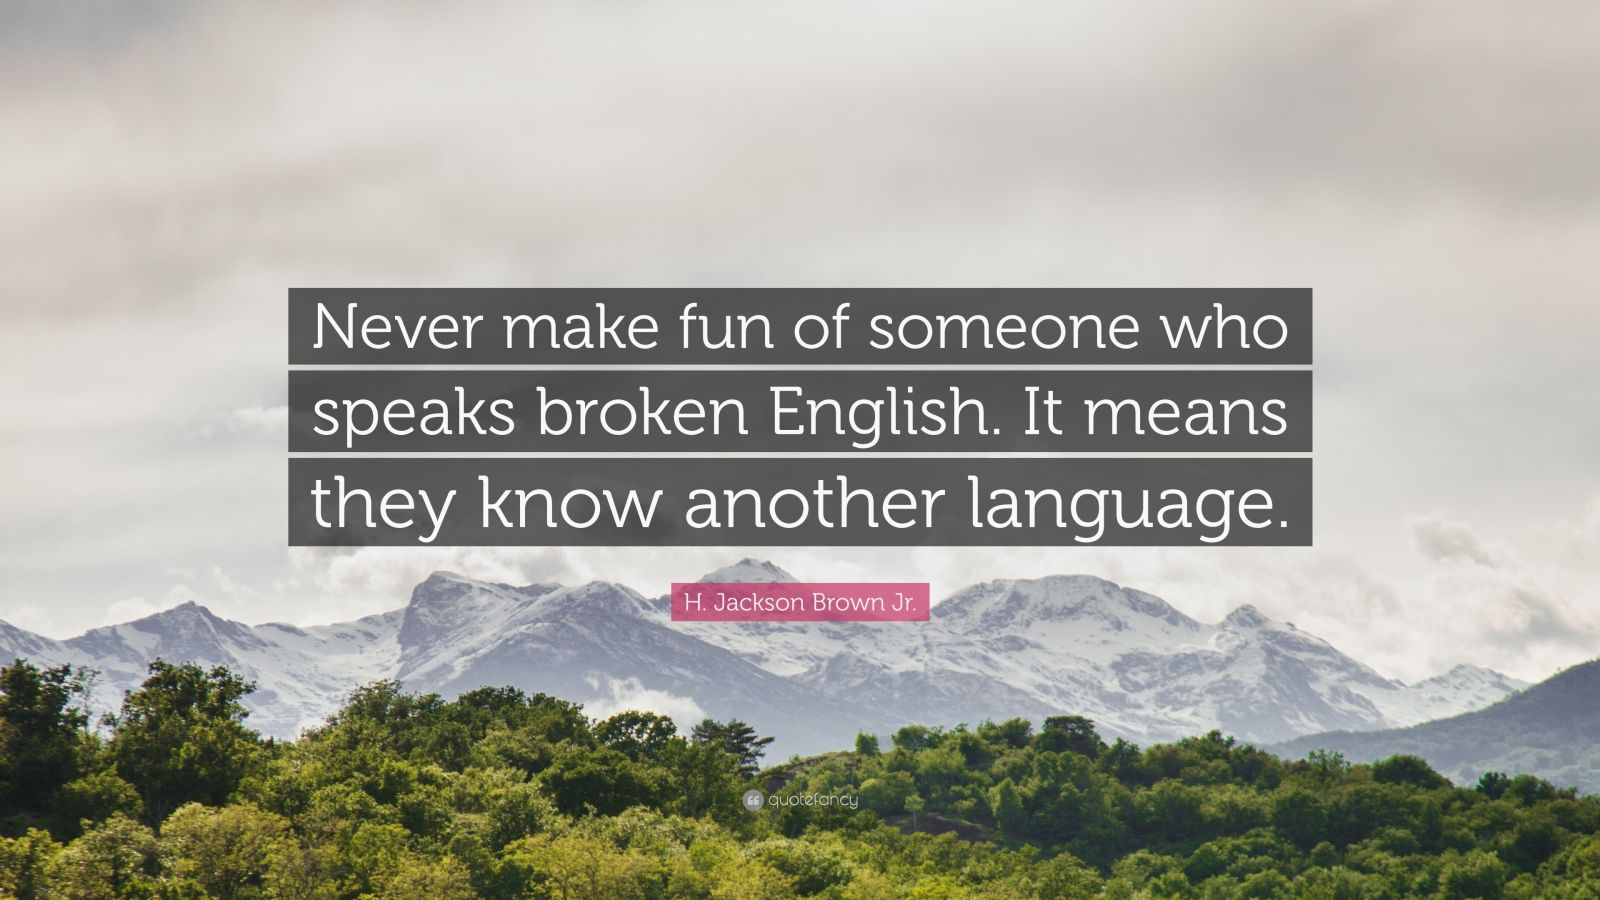 """H. Jackson Brown Jr. Quote: """"Never make fun of someone who speaks broken English. It means they know another language."""""""